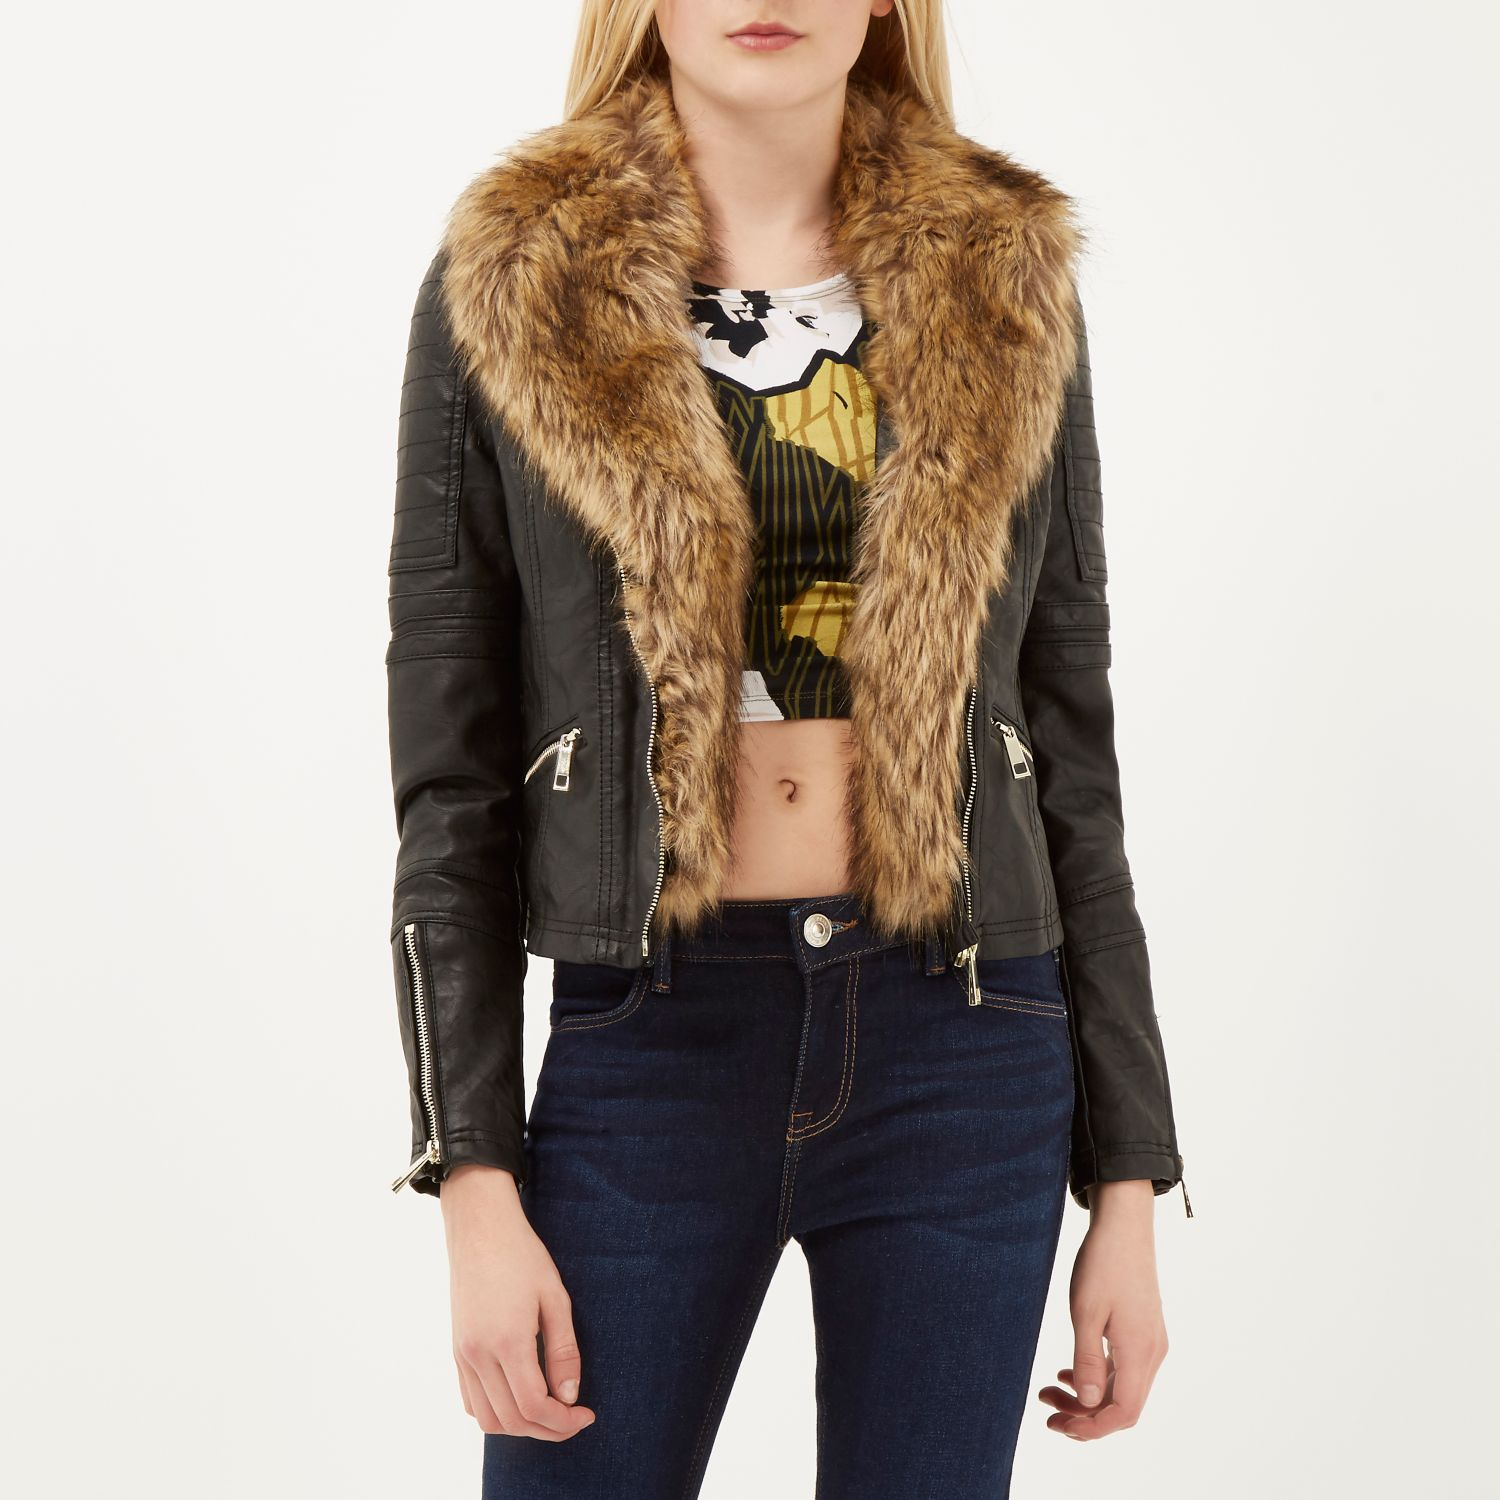 River island Black Leather-look Faux Fur Biker Jacket in Black | Lyst